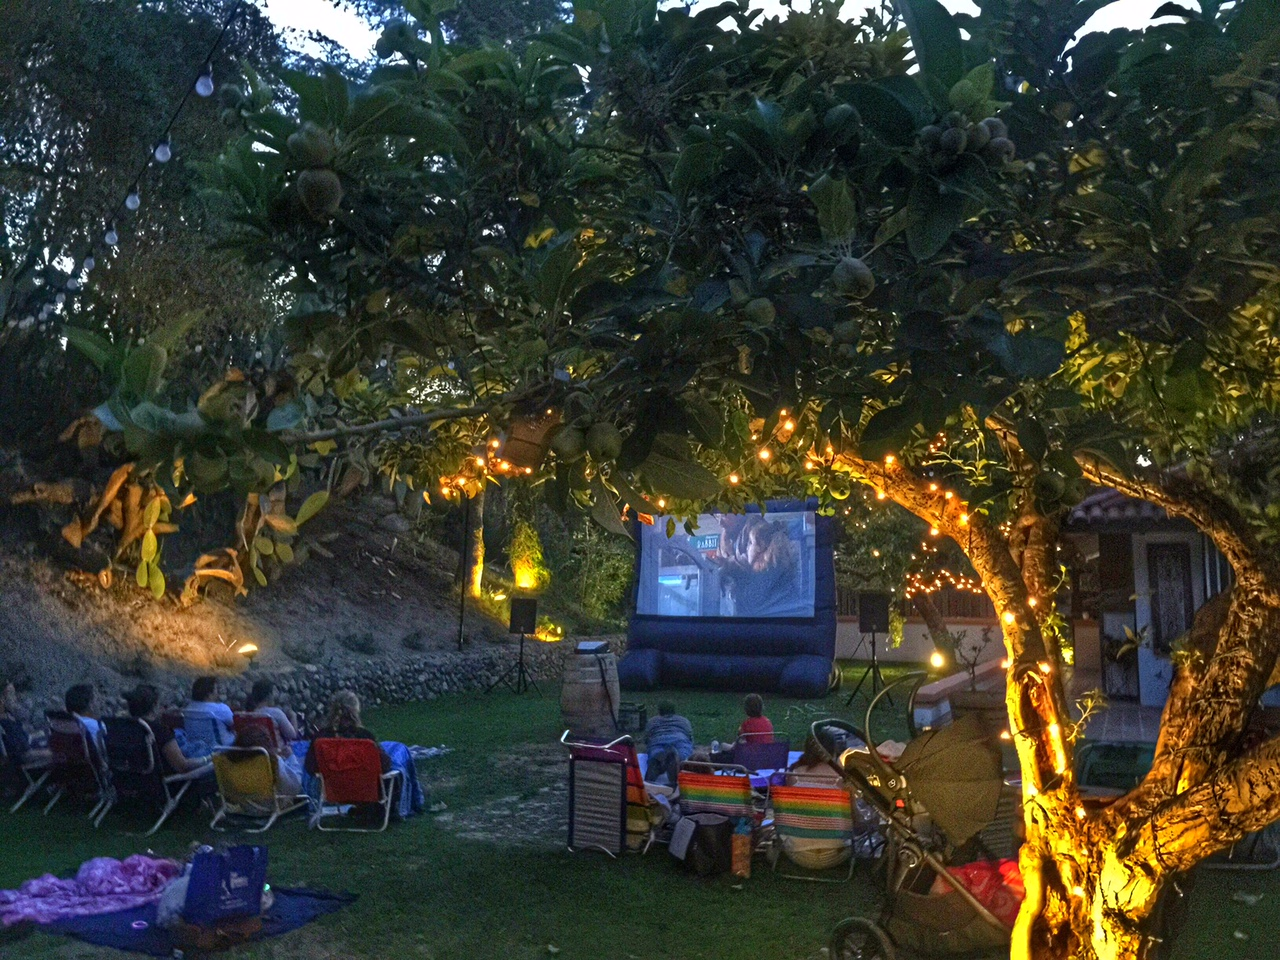 hotel irvine summer movie nights in the backyard oc mom blog